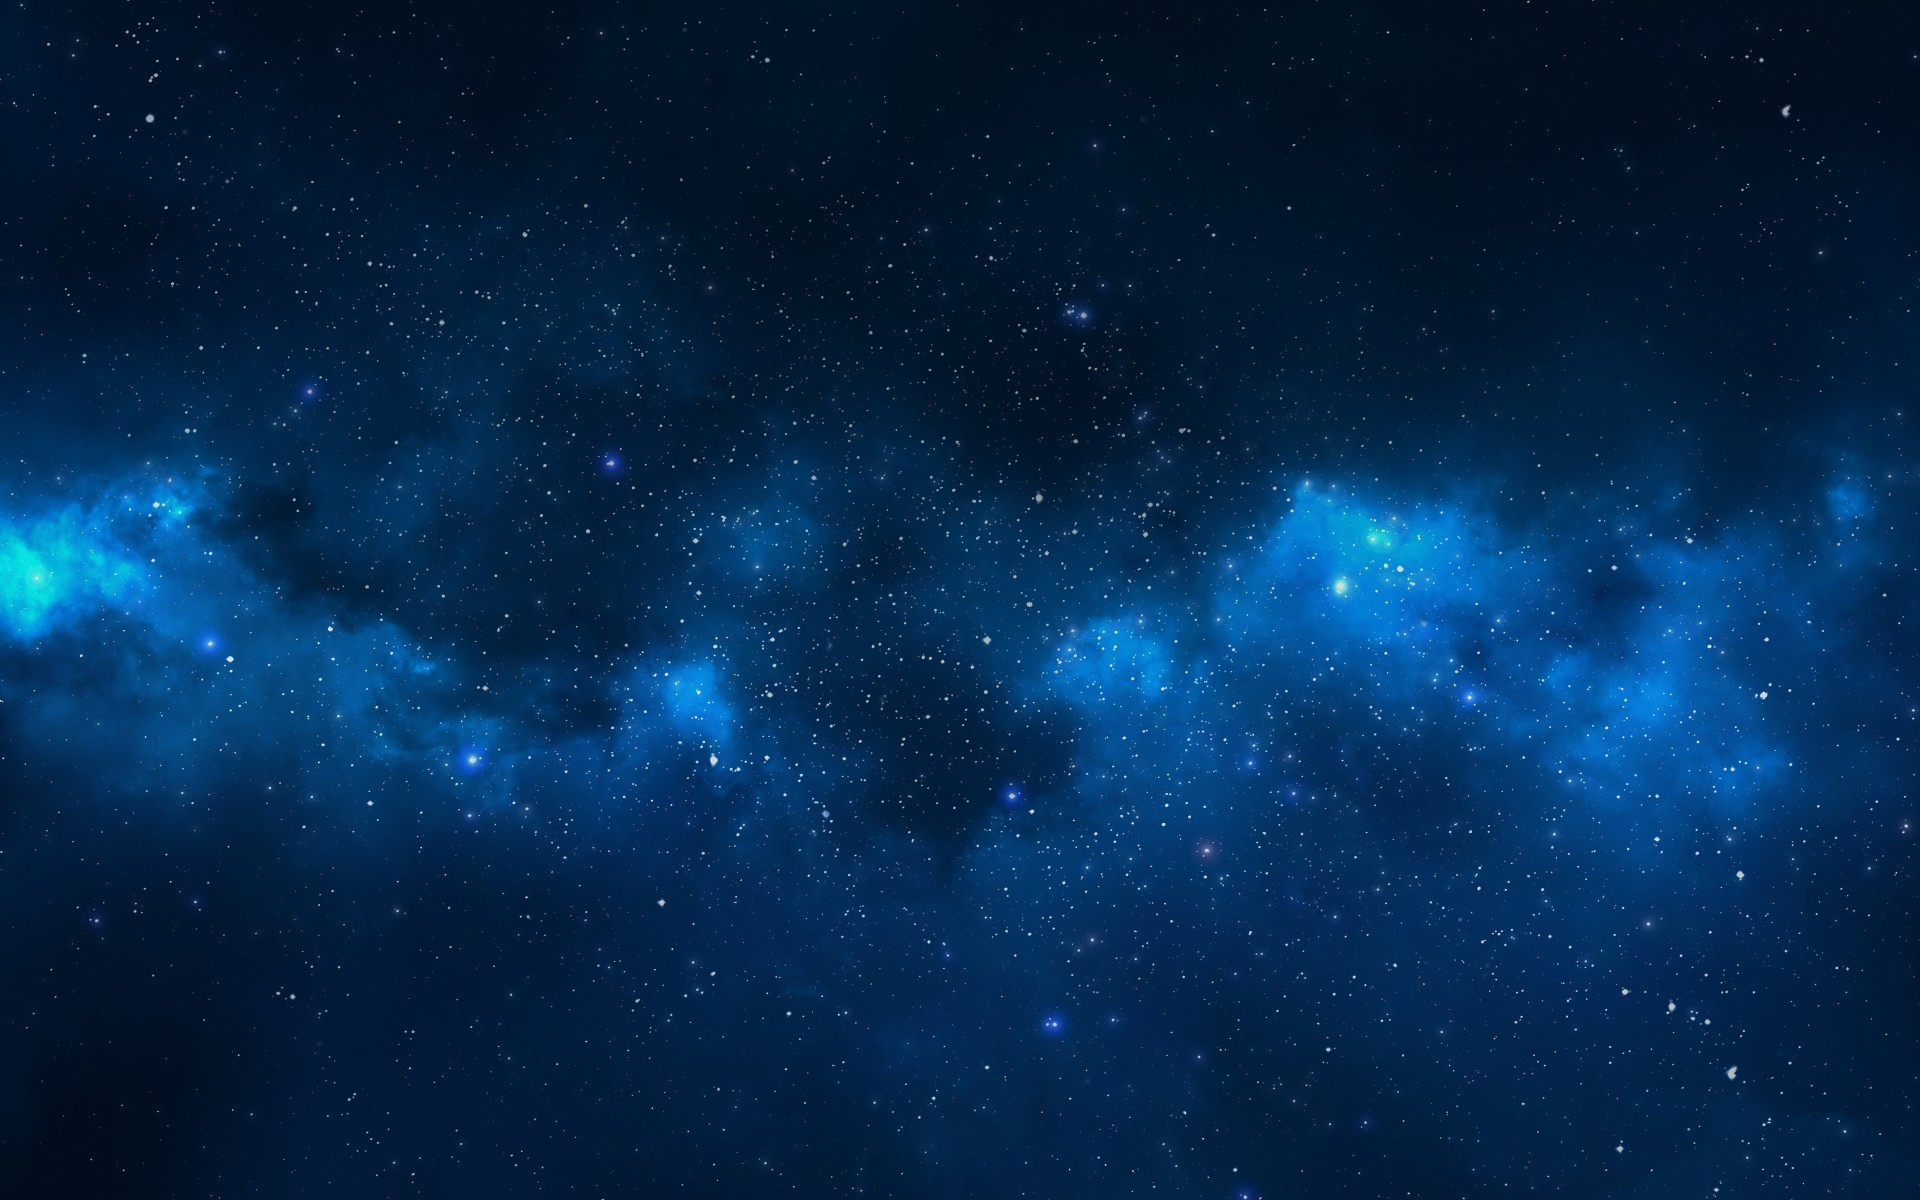 night-sky-hd-wallpaper-2